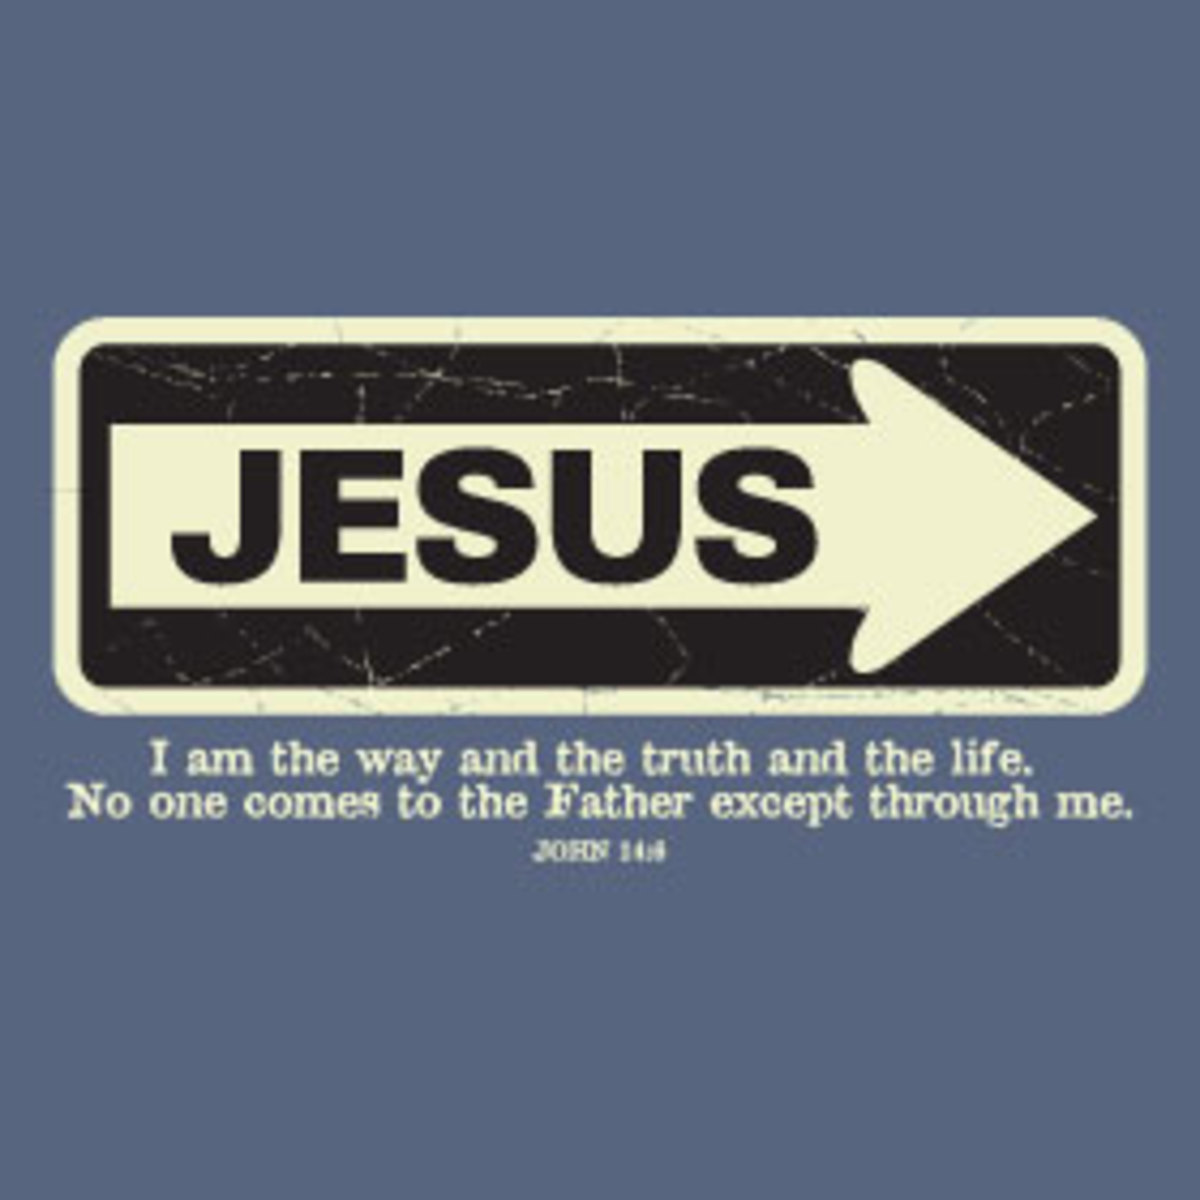 Jesus is the Way, Truth, and Life.